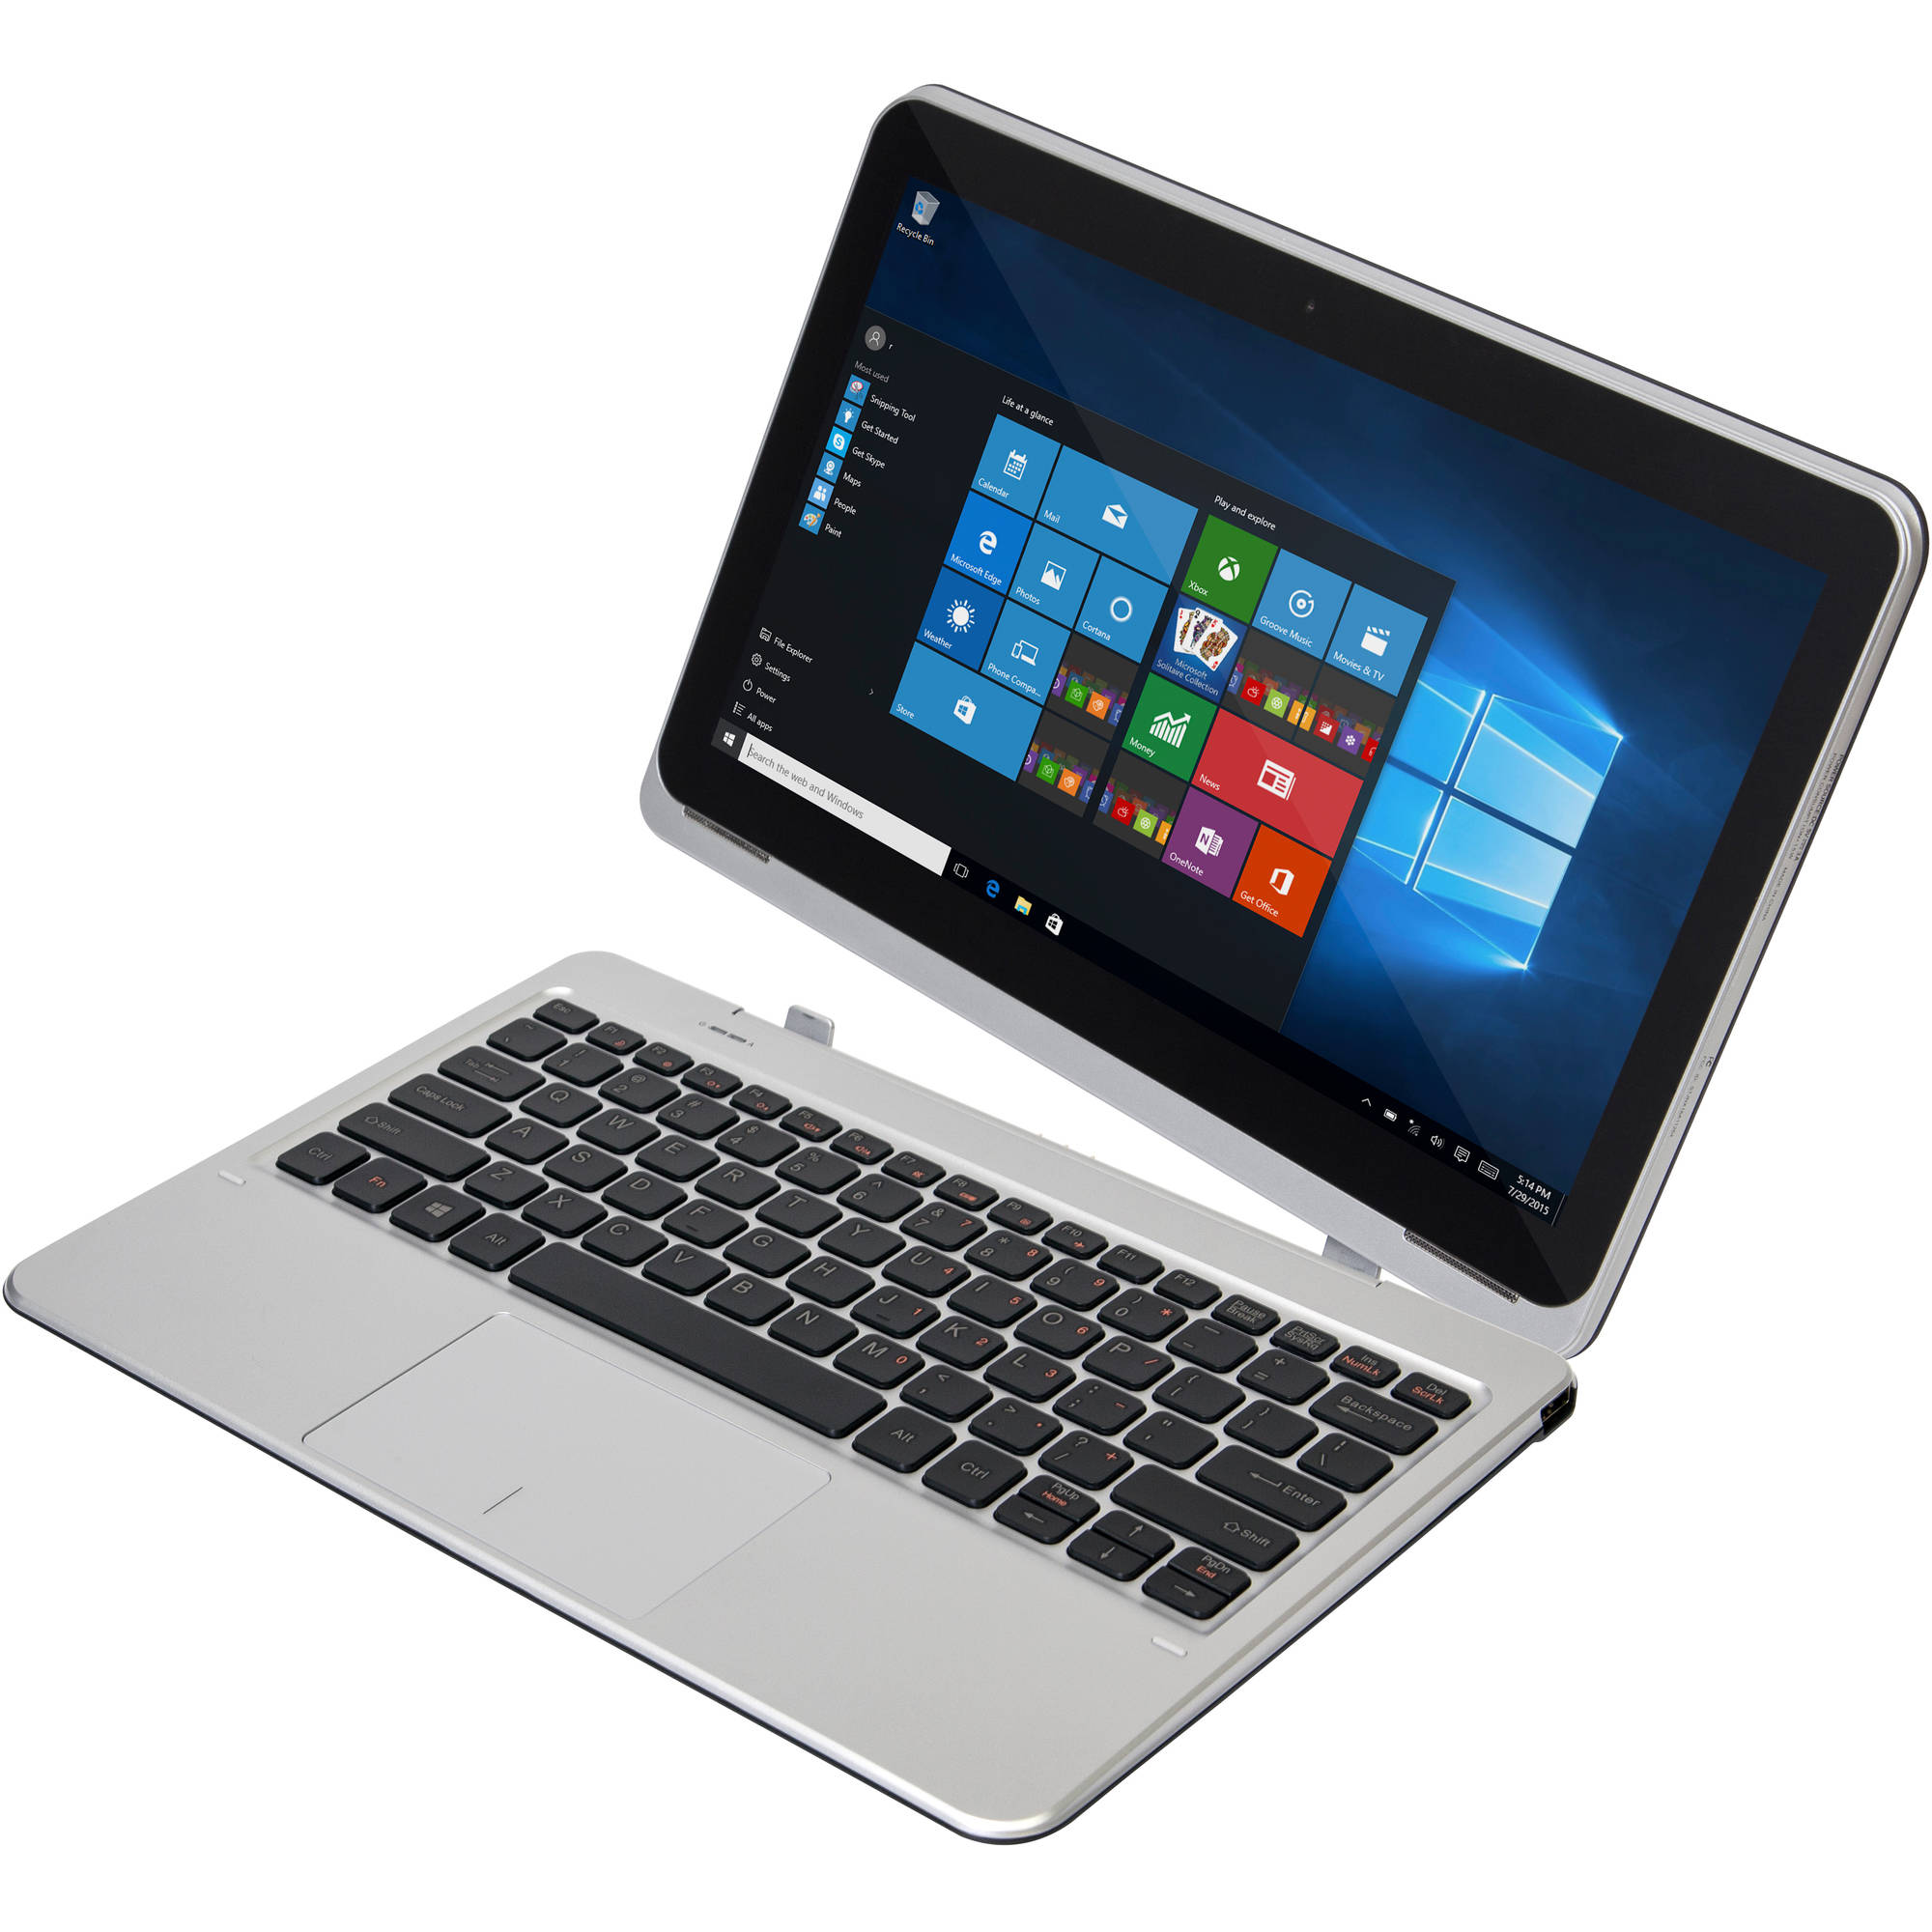 "Nextbook Flexx 11A with WiFi 11.6"" Convertible Touchscreen Tablet PC Featuring Windows 10 Operating System, Silver"